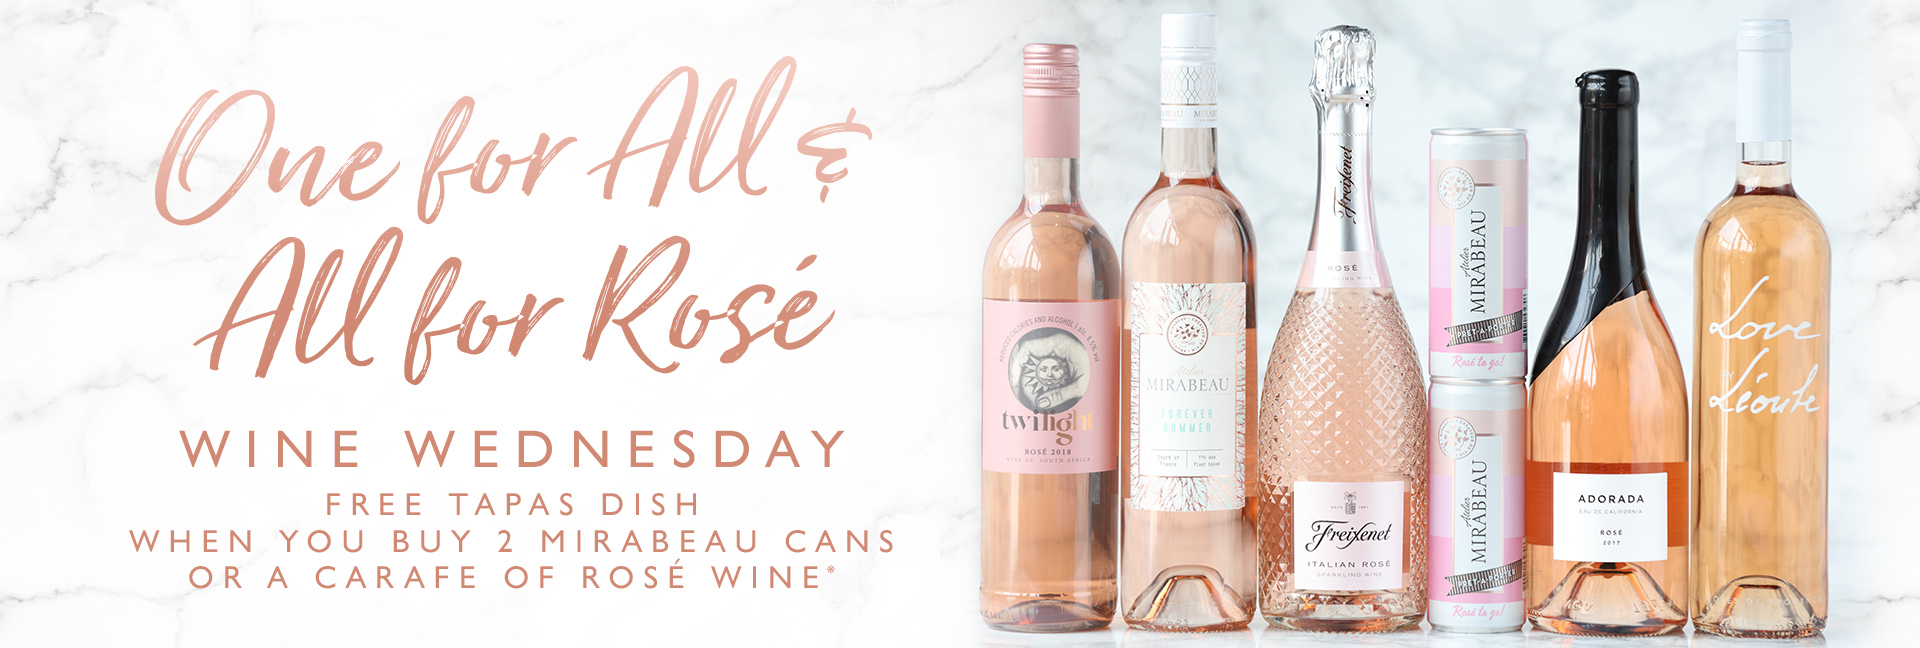 Wine Wednesday at All Bar One York